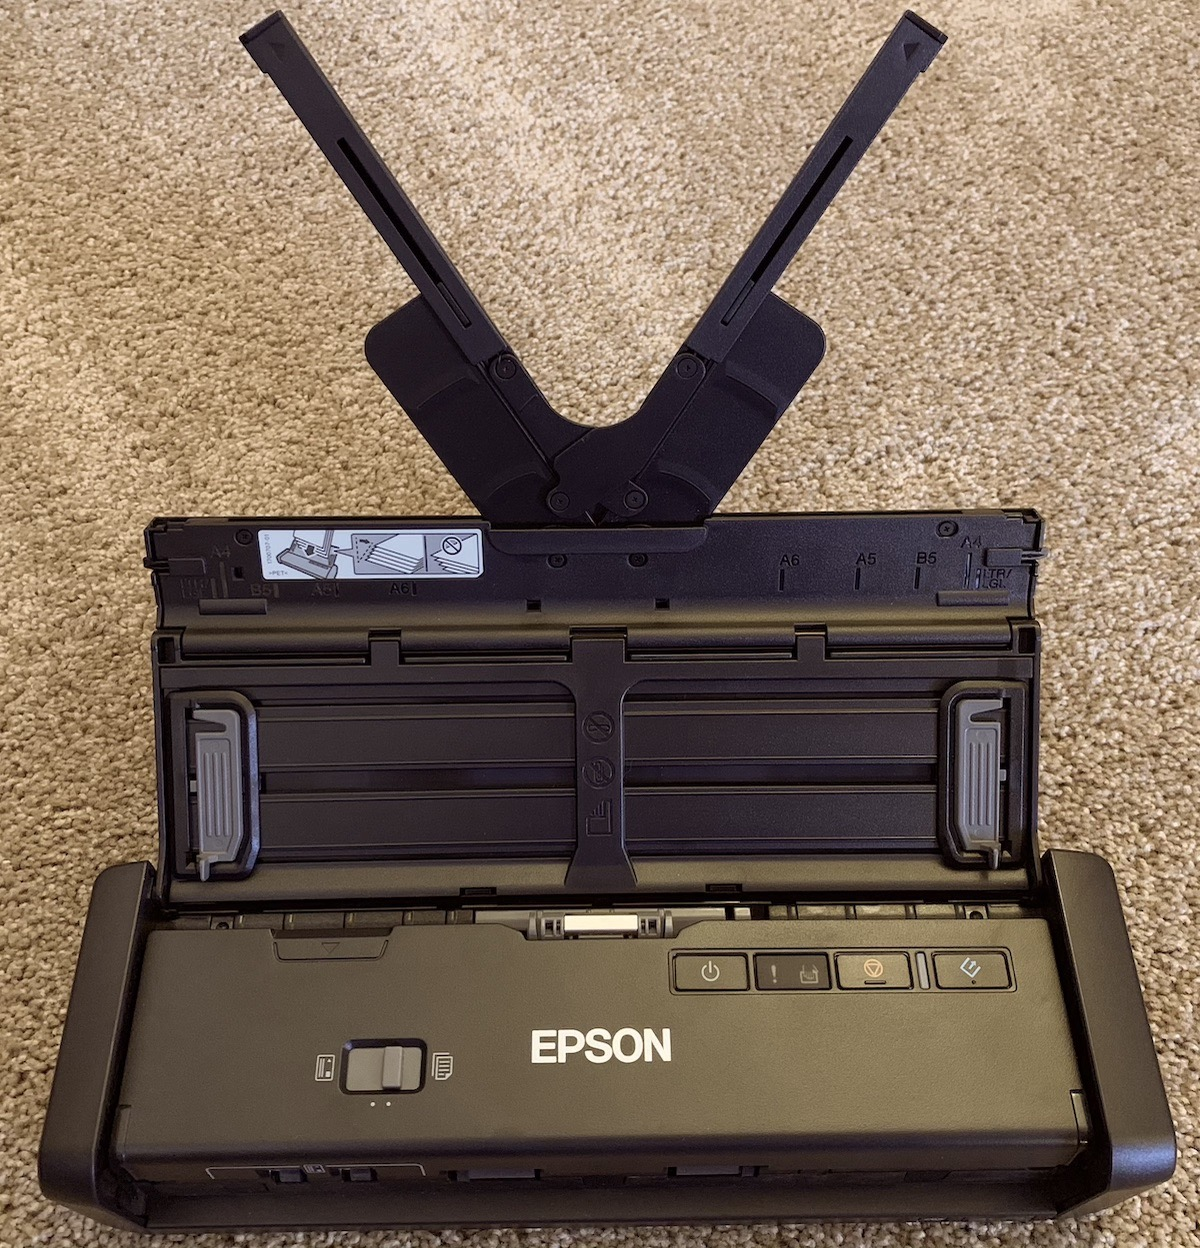 Epson ES 300W unfolded